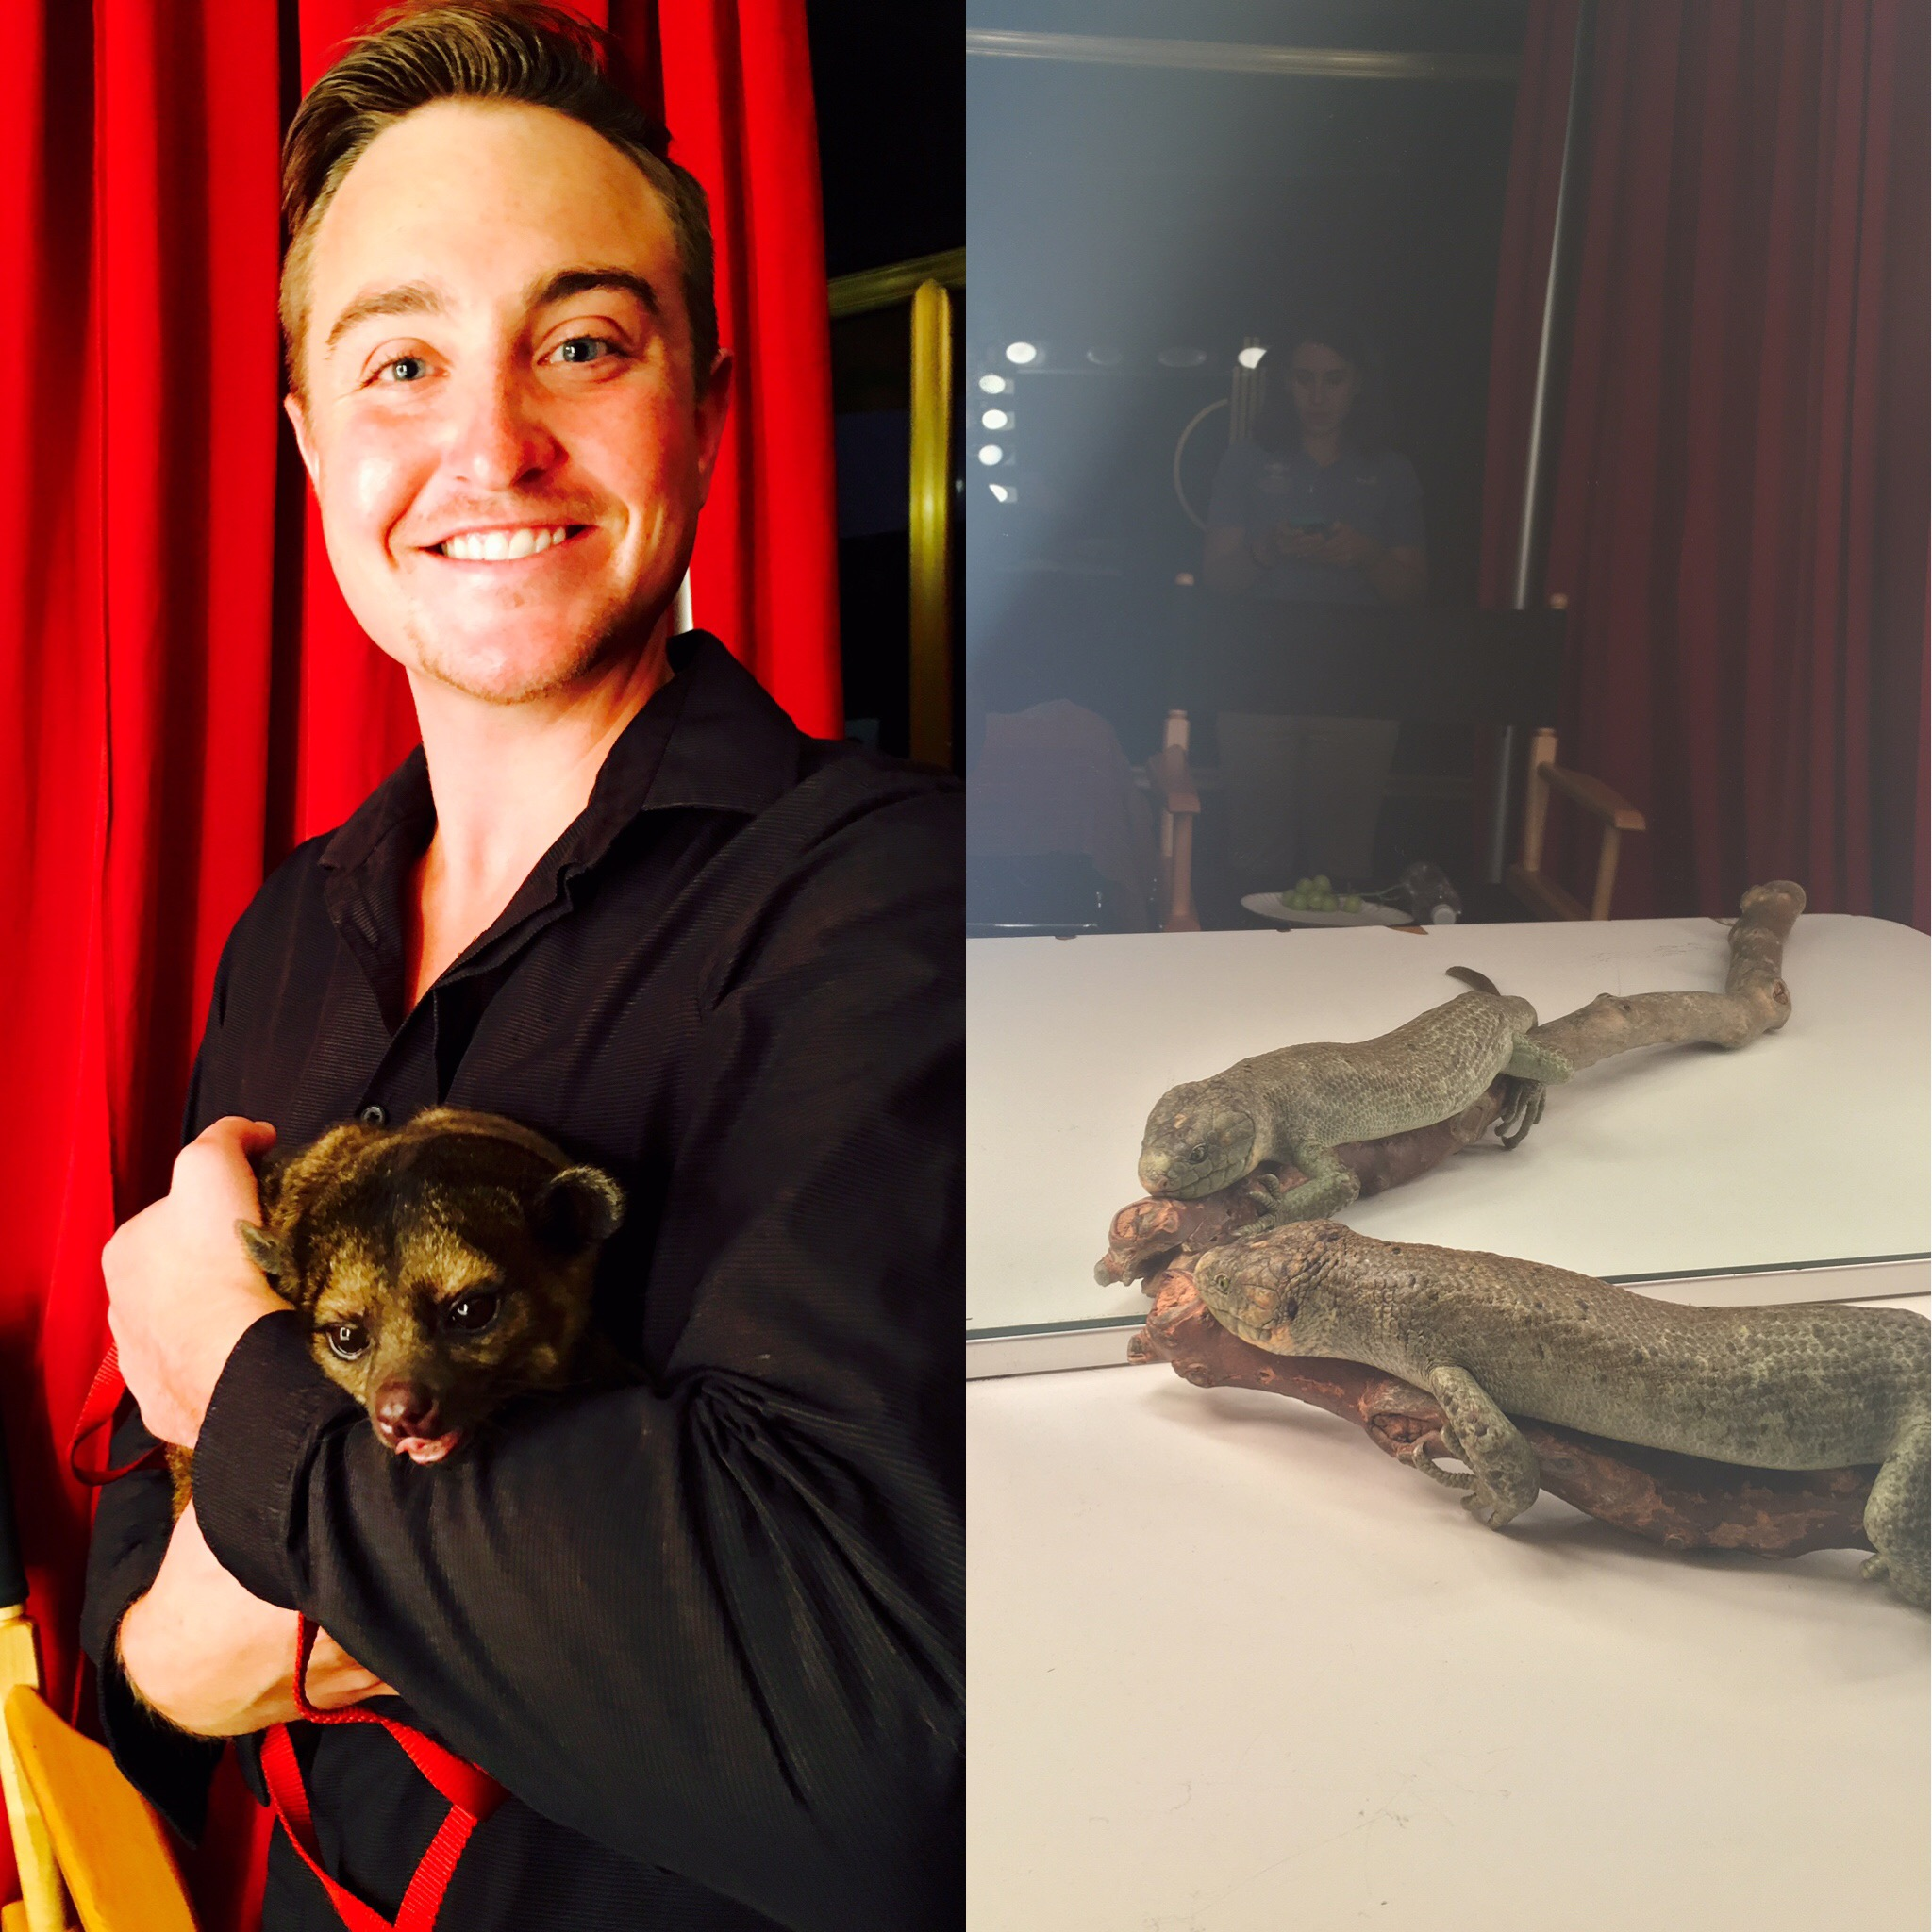 Getting acquainted with the animals in the green room before heading up to Studio 1A.